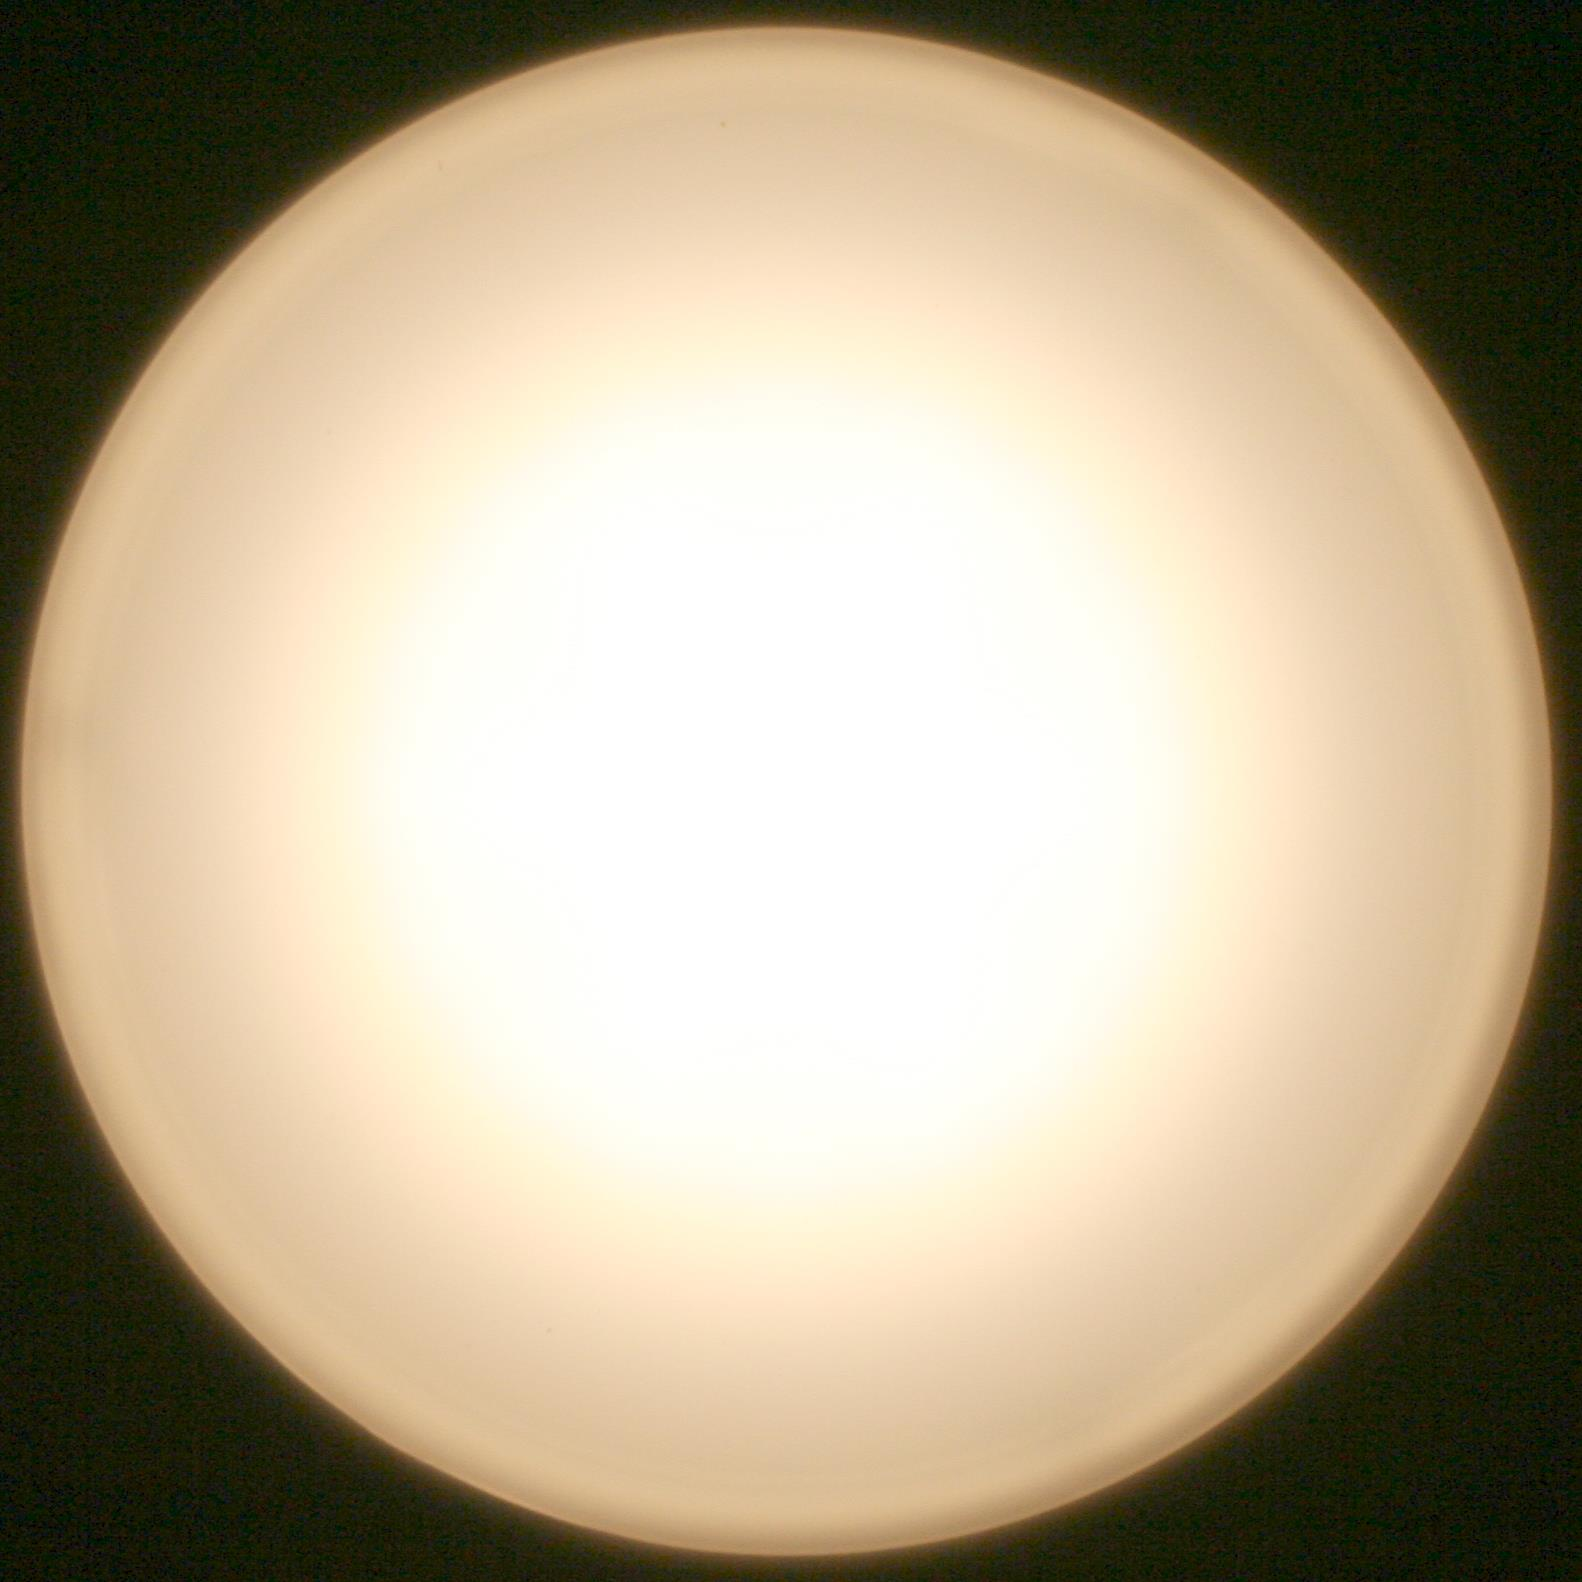 ... accepted as box-labeled 1022 lumens at (observed) 15 watts. At stage right is 11-56JBOX-LED 900L claimed at the Cost Less Lighting site ...  sc 1 st  Energy Conservation How To - blogger & Energy Conservation How To: Low-Glare LED Disk Downlights From ... azcodes.com